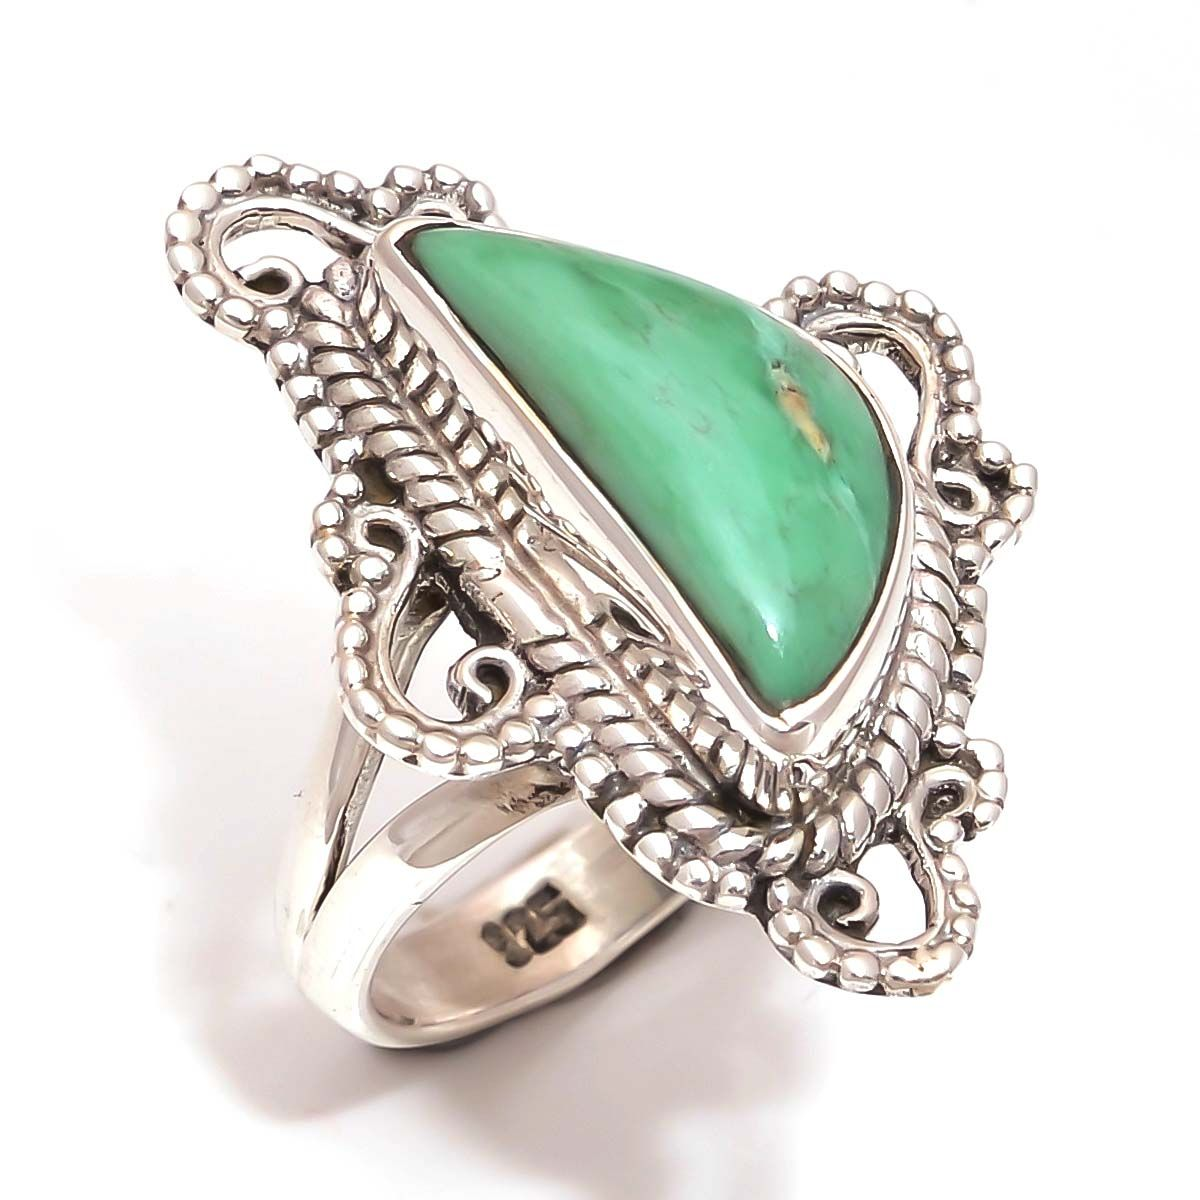 Variscite Gemstone 925 Sterling Silver Ring Size 7